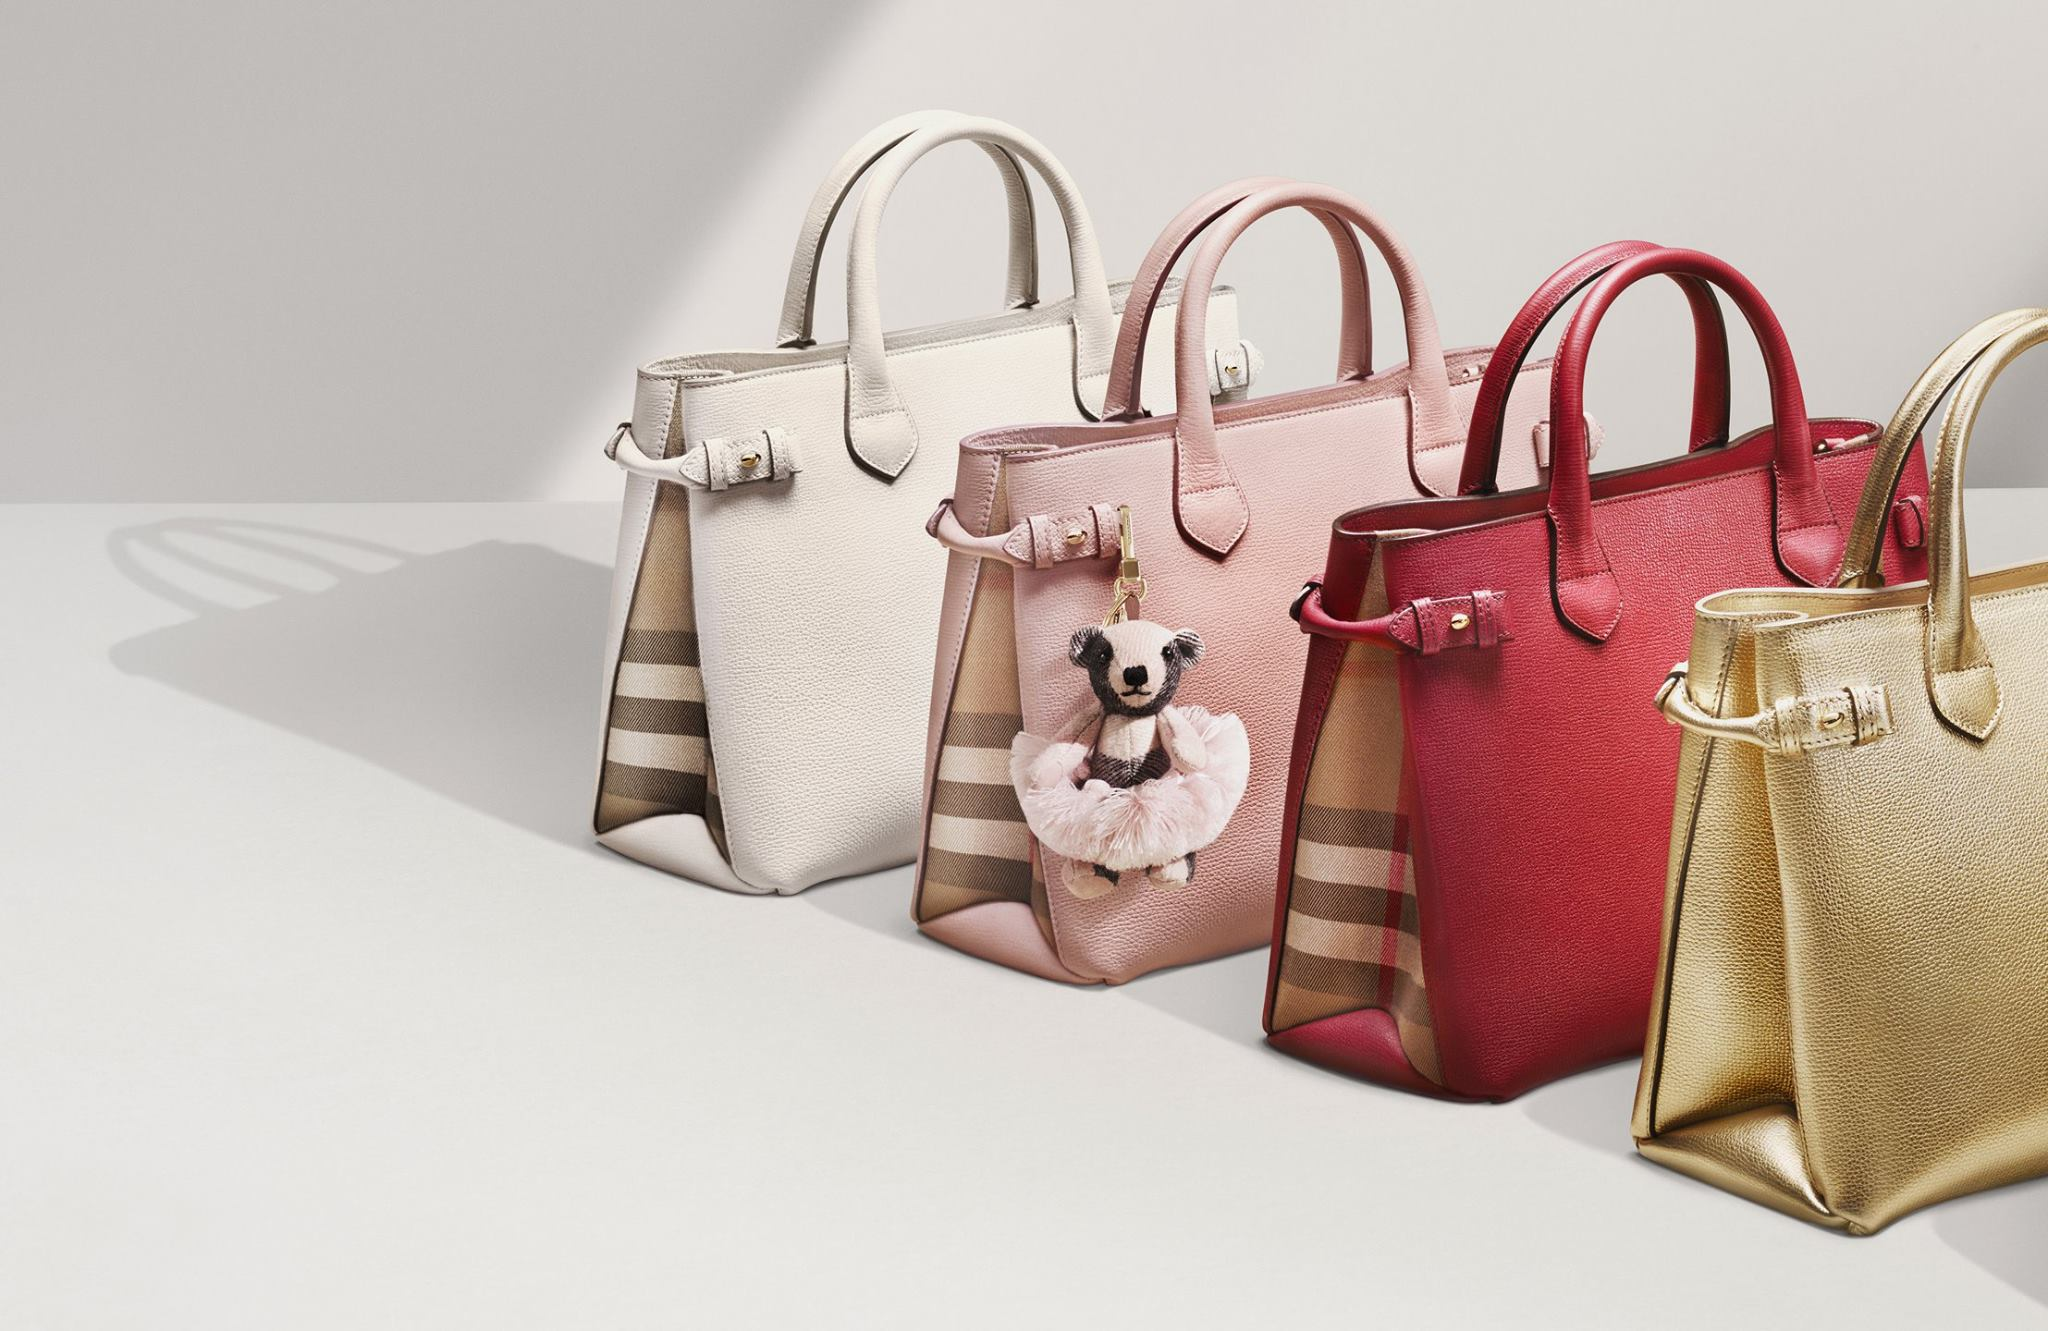 Burberry Bags Prices 2016